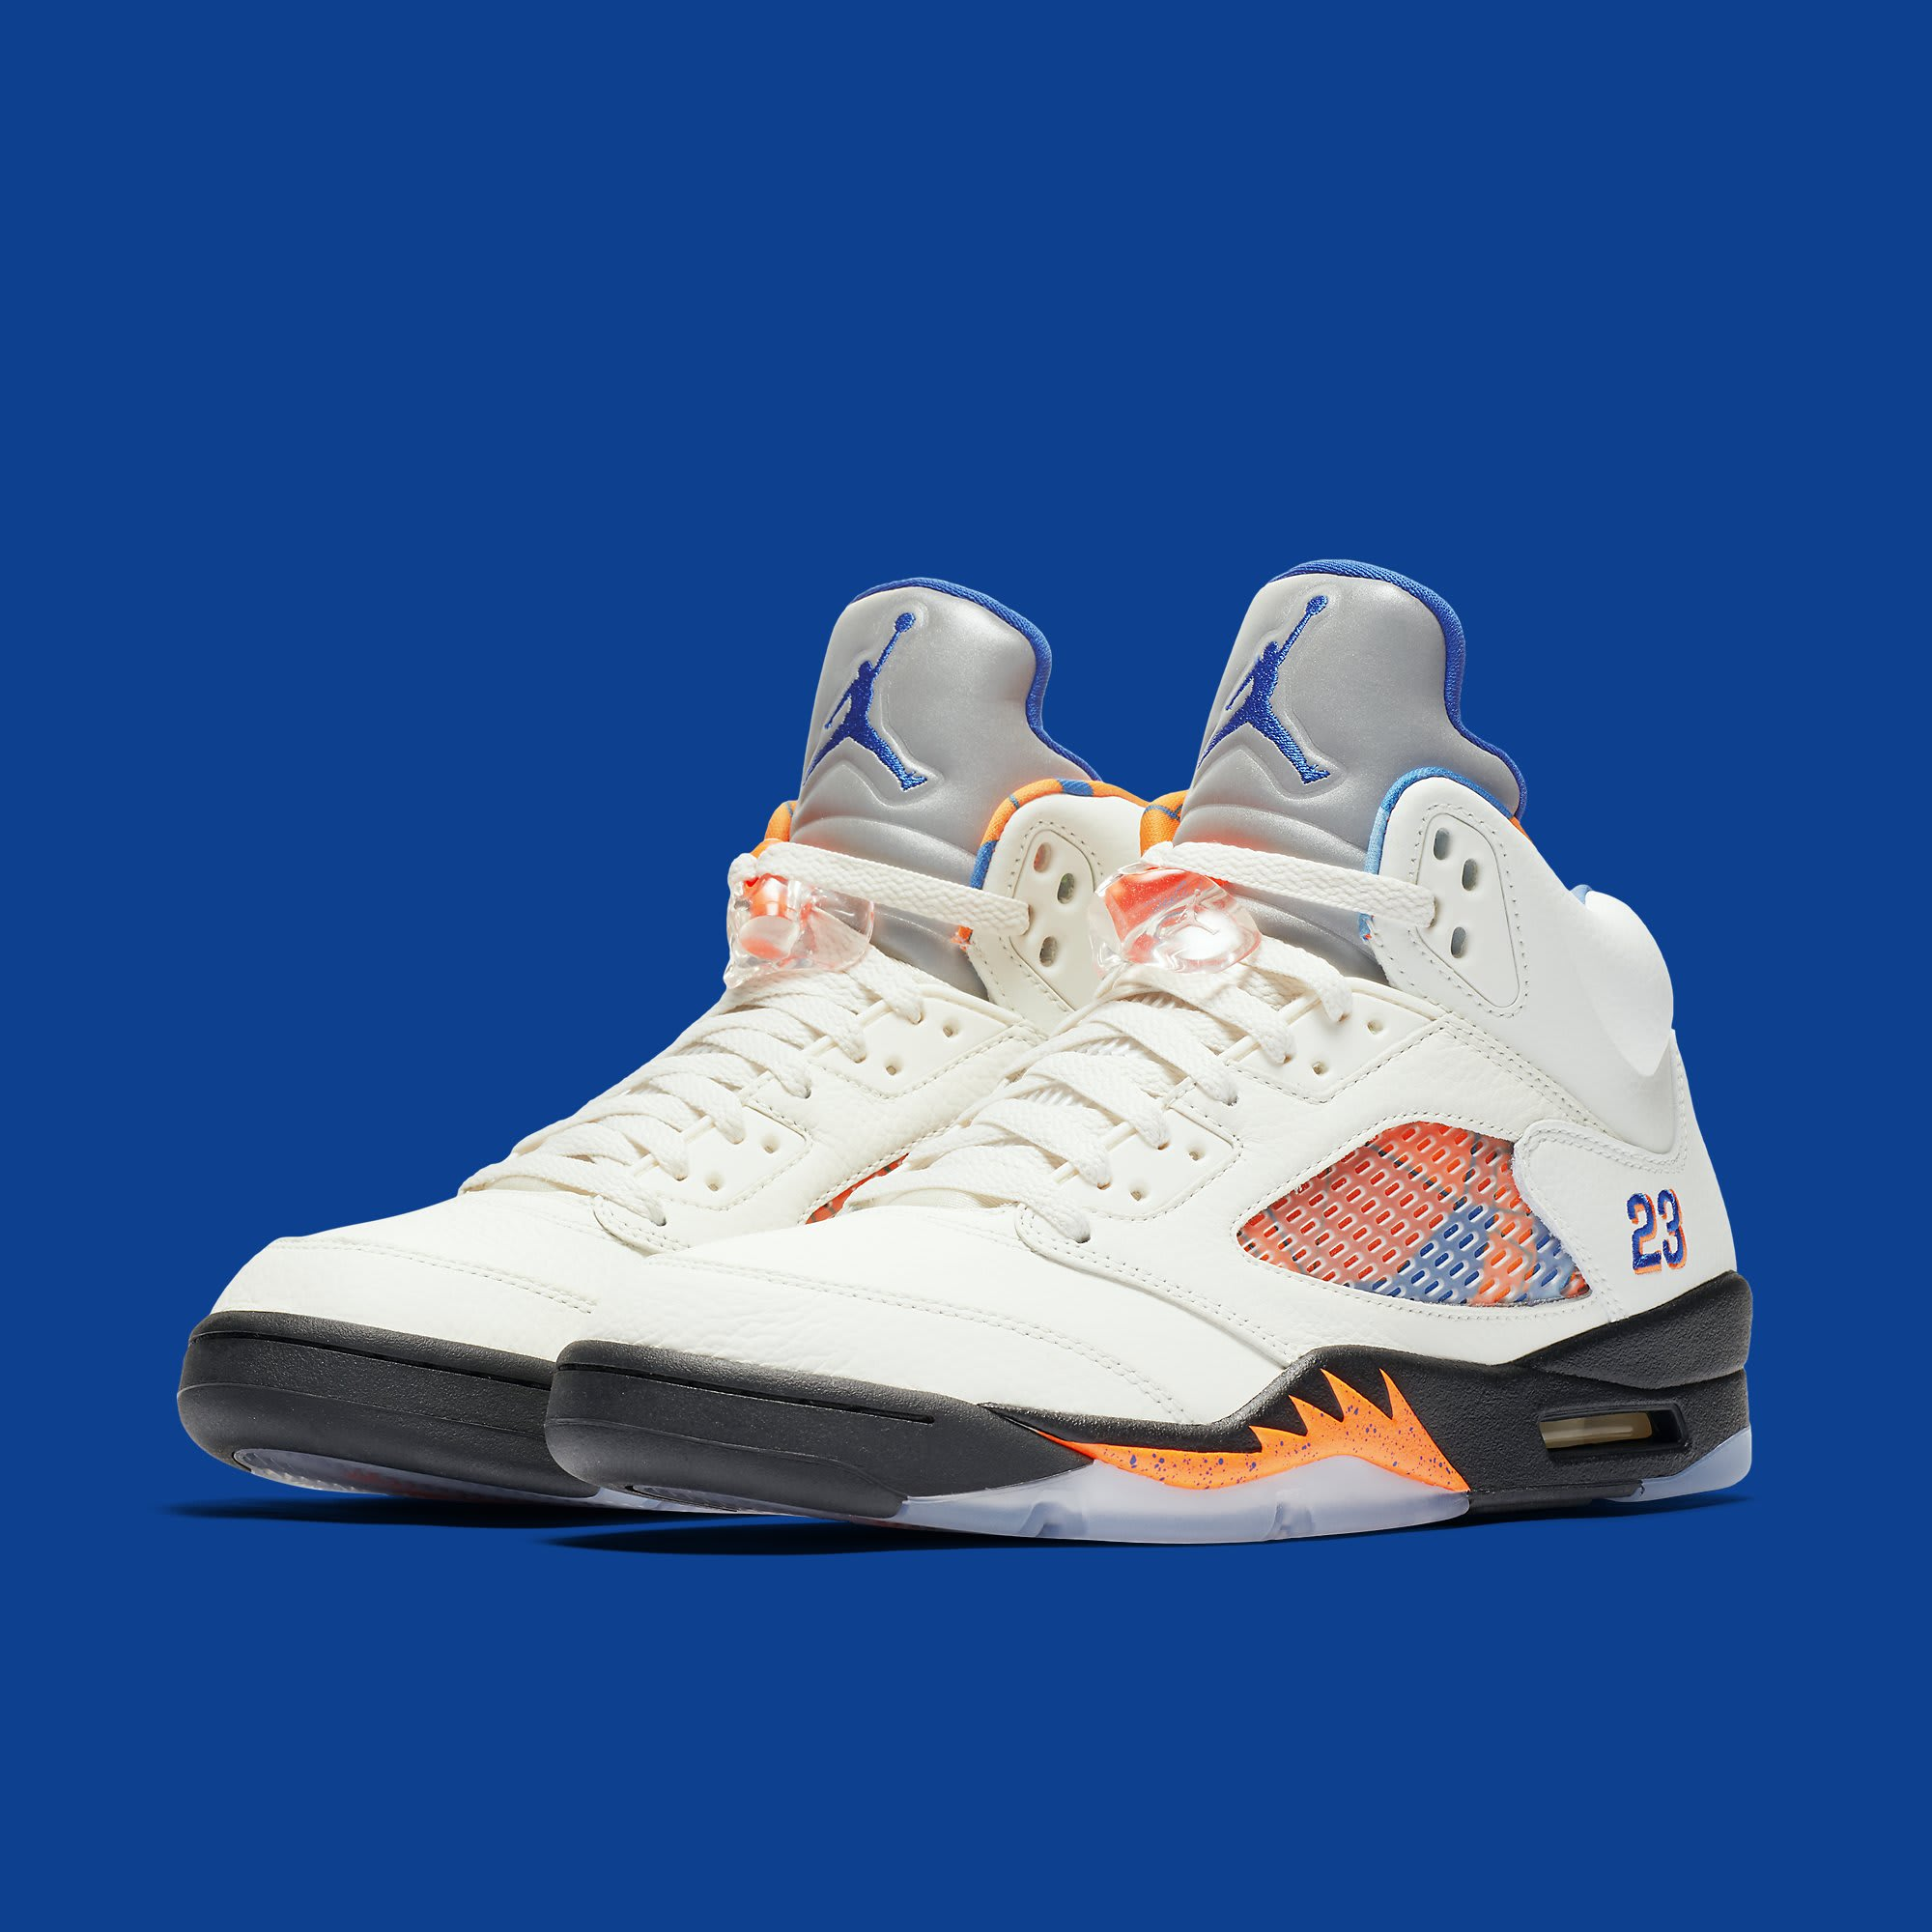 2018 06 01T21:13:24+00:00 0.8 images.solecollector